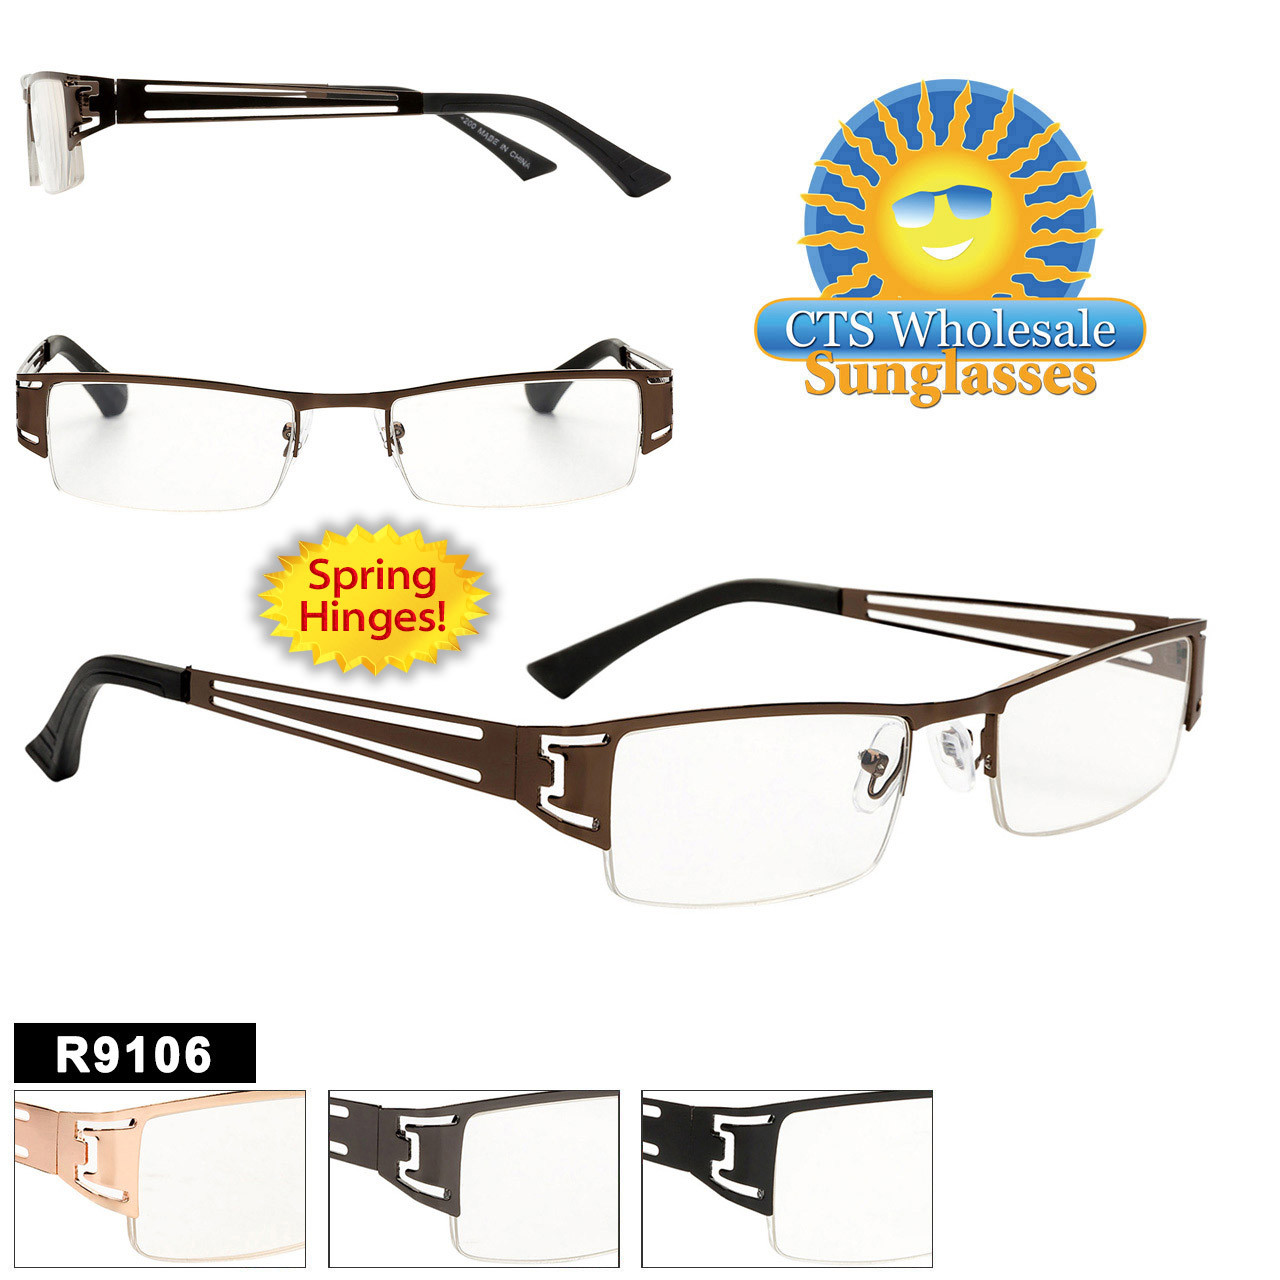 Metal Reading Glasses Wholesale - R9106